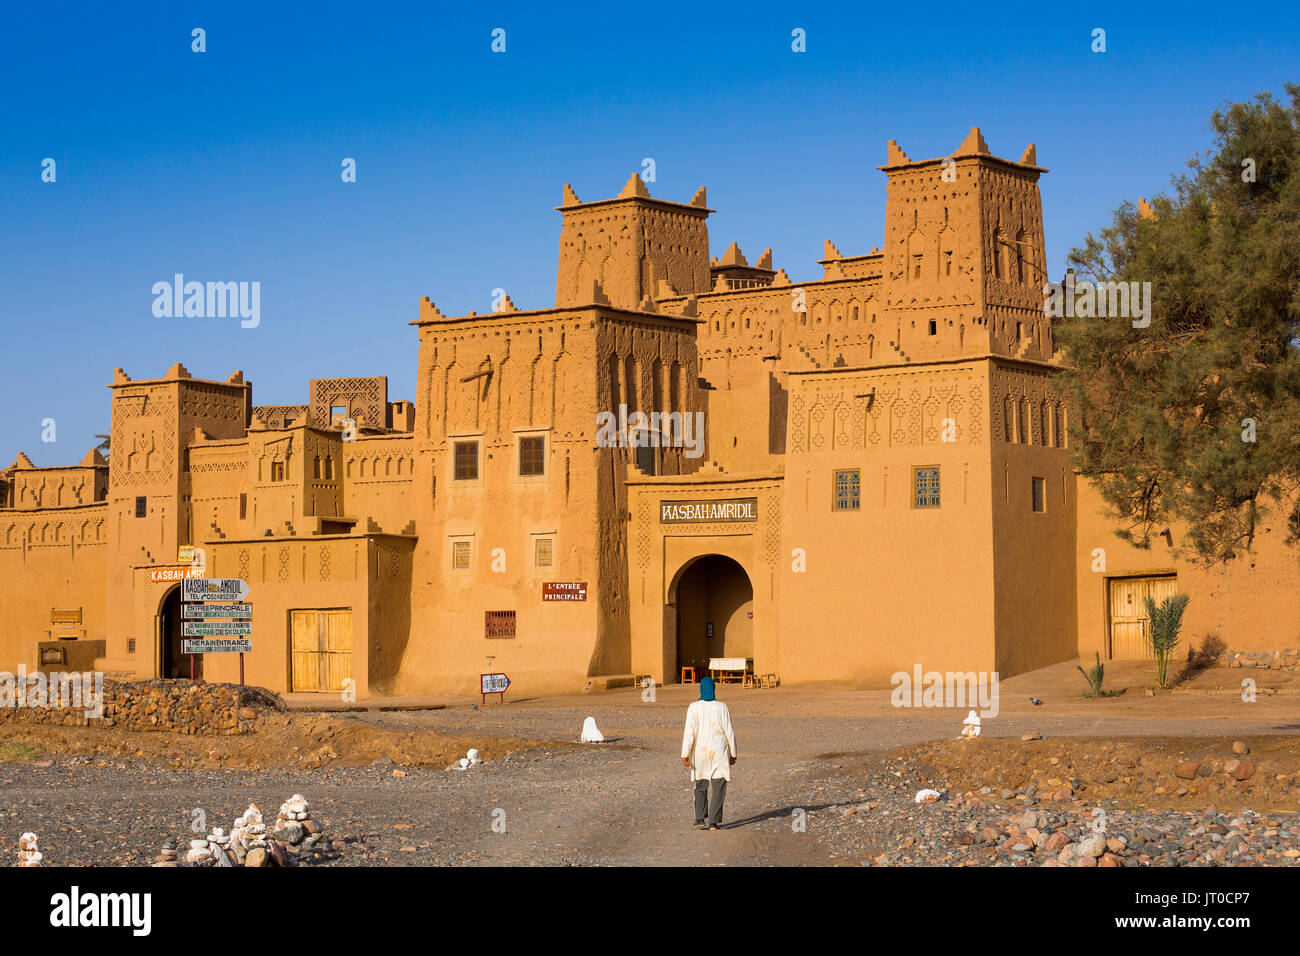 Hotel Kasbah Amridil, Dades Valley, Skoura. Morocco, Maghreb North Africa - Stock Image